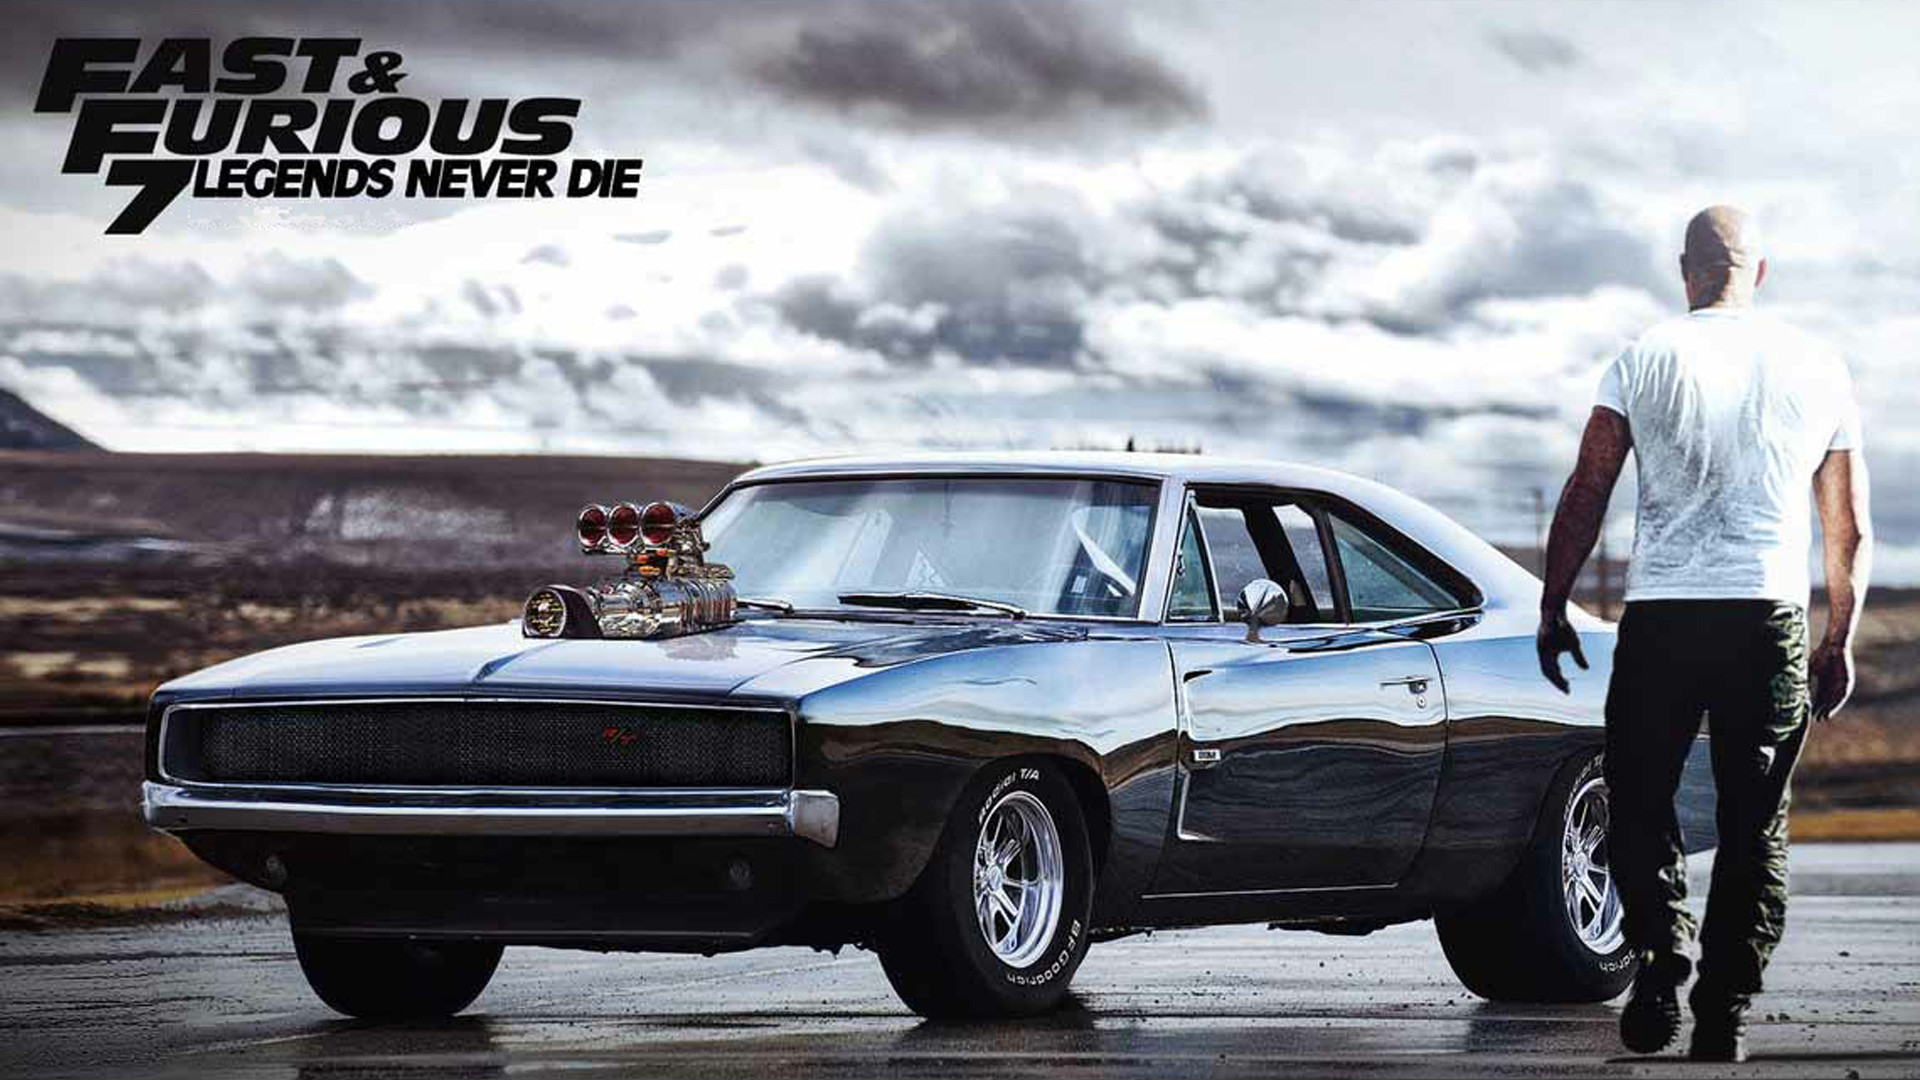 The Fast And The Furious Wallpapers Wallpapertag